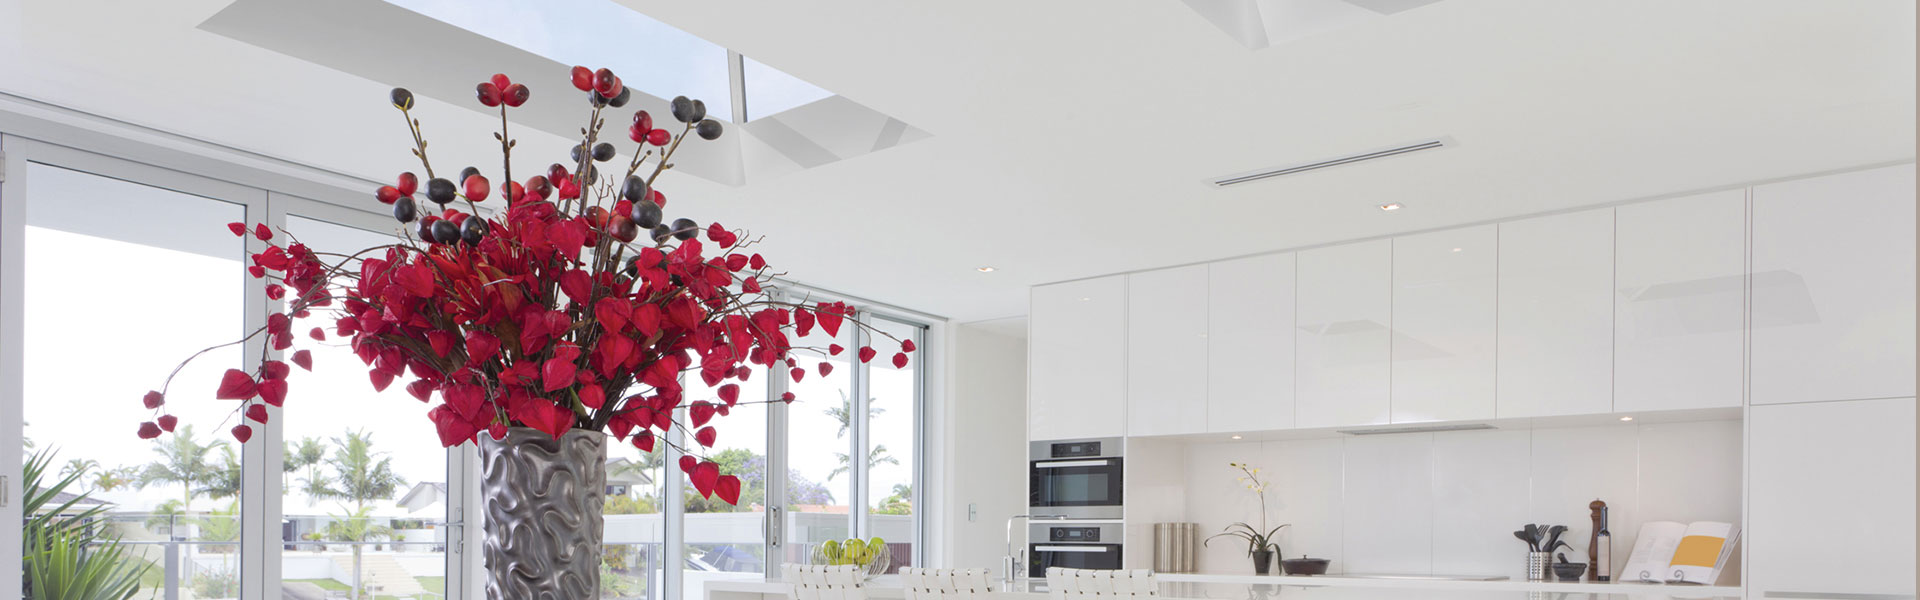 roof-light in a white kitchen